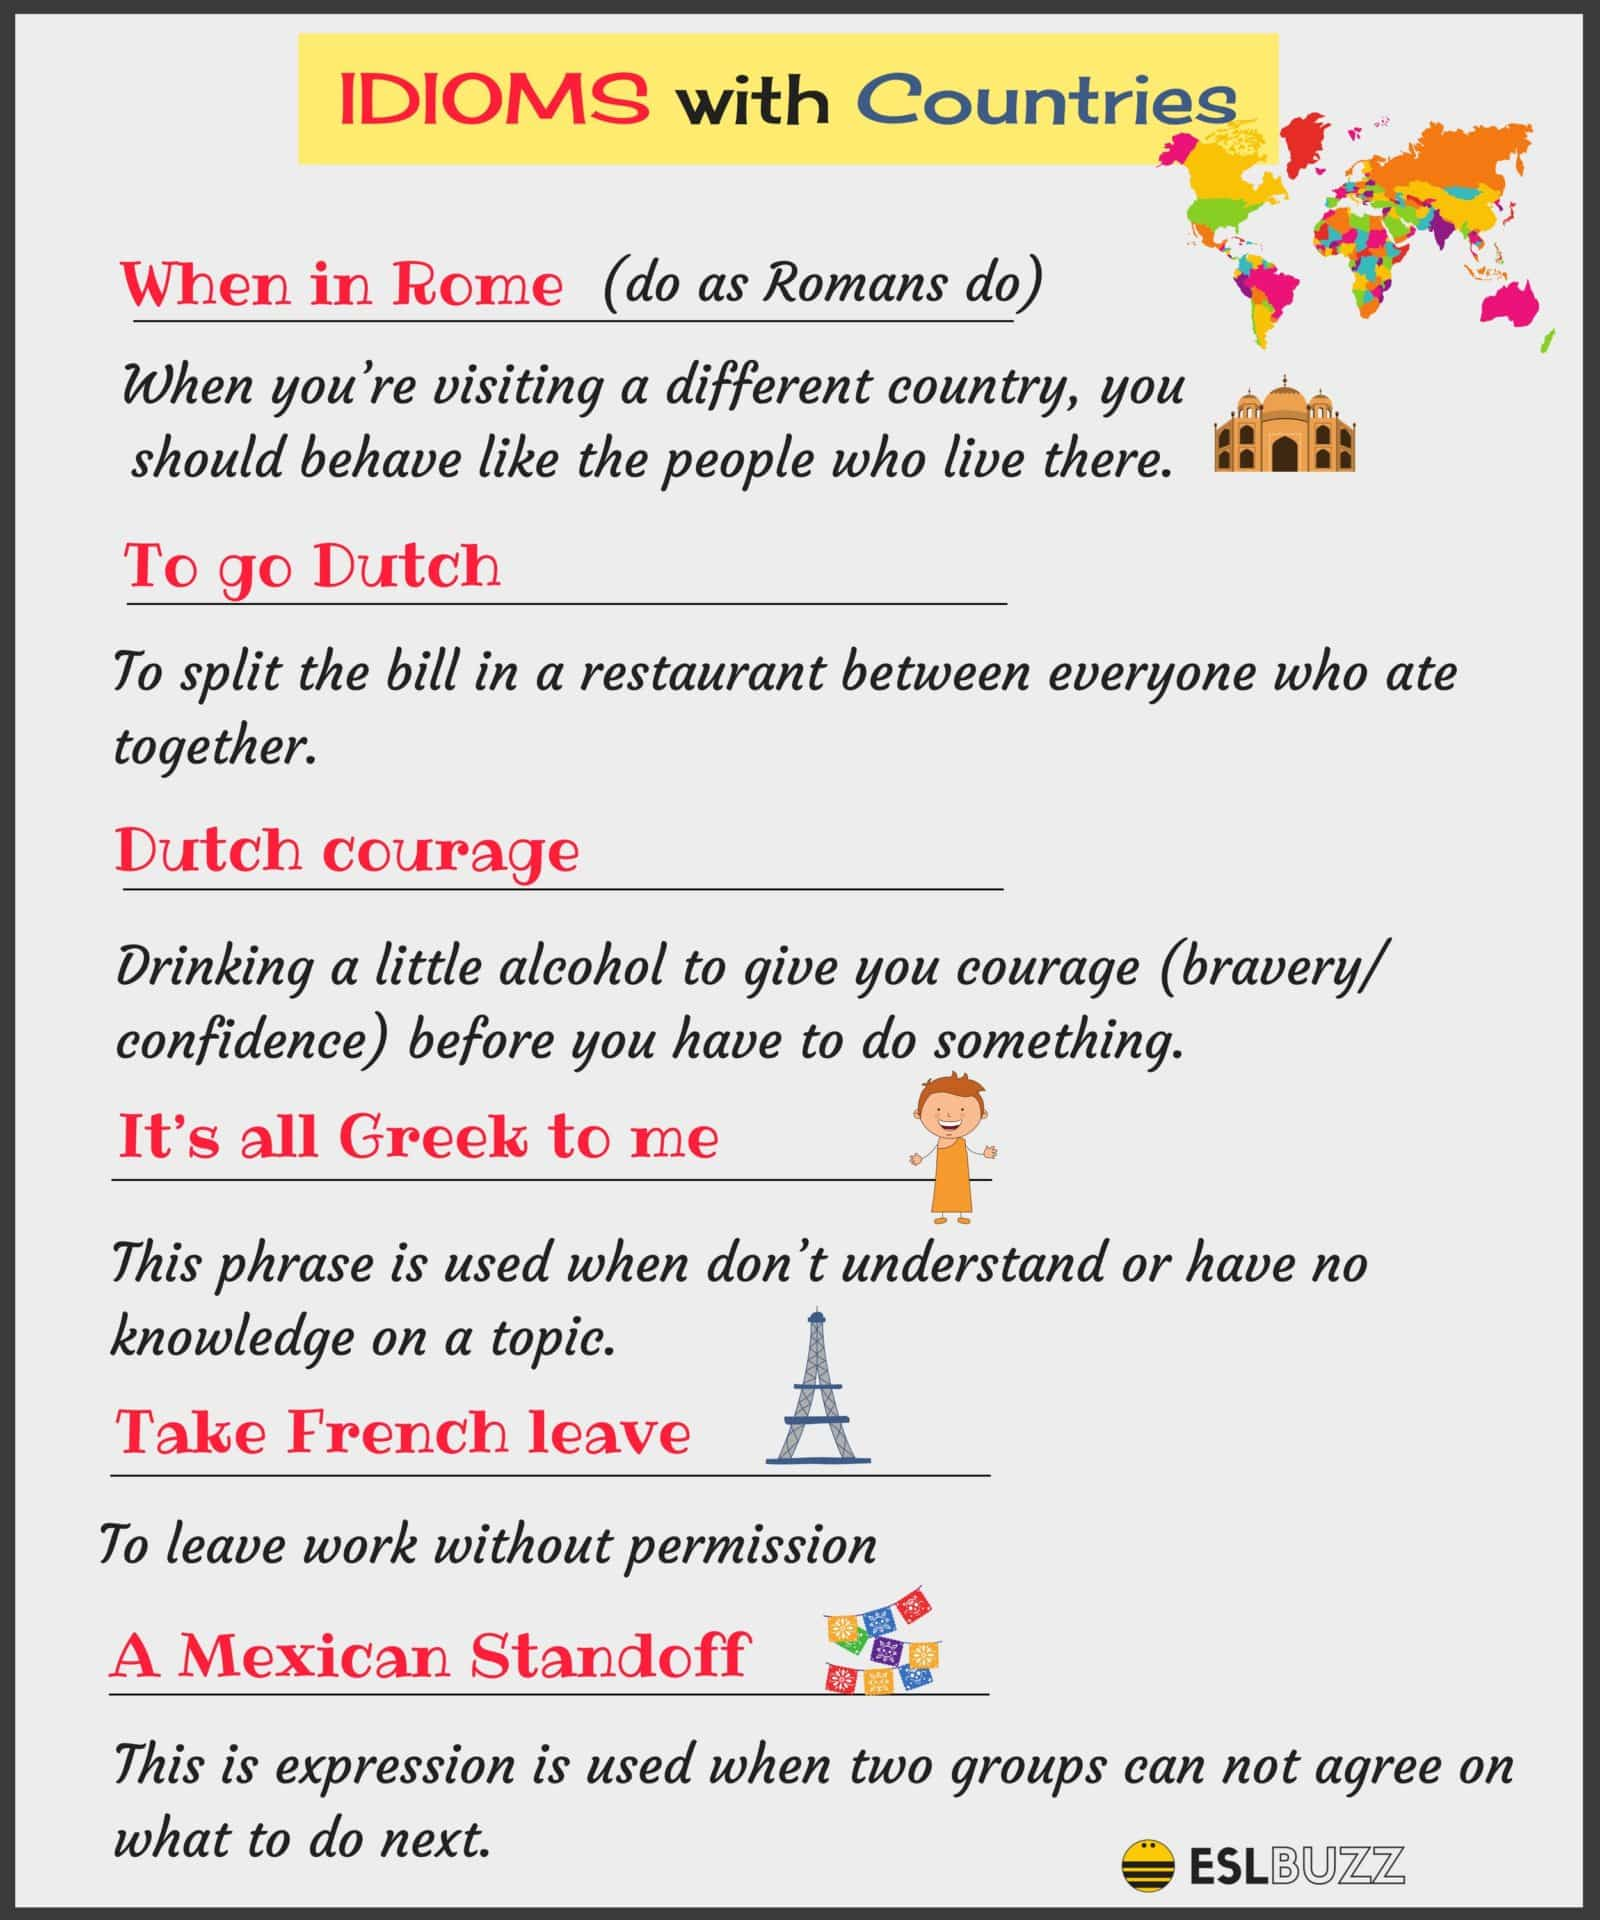 Interesting English Idioms Using Nationalities and Countries